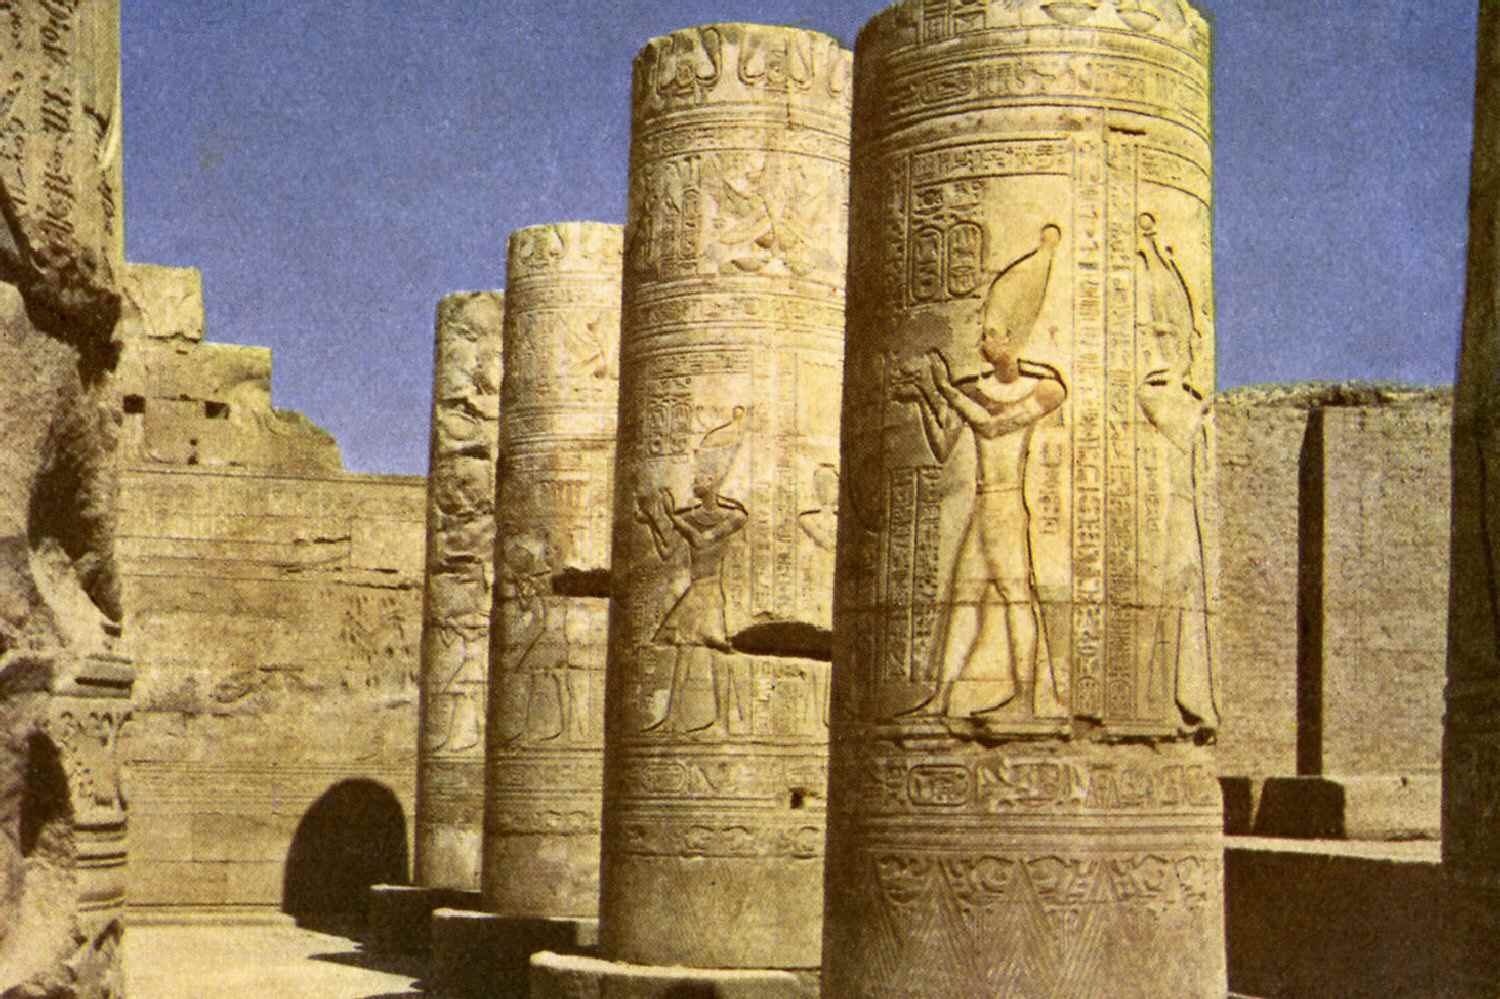 parts of large columns ornately carved with Egyptian figures and designs